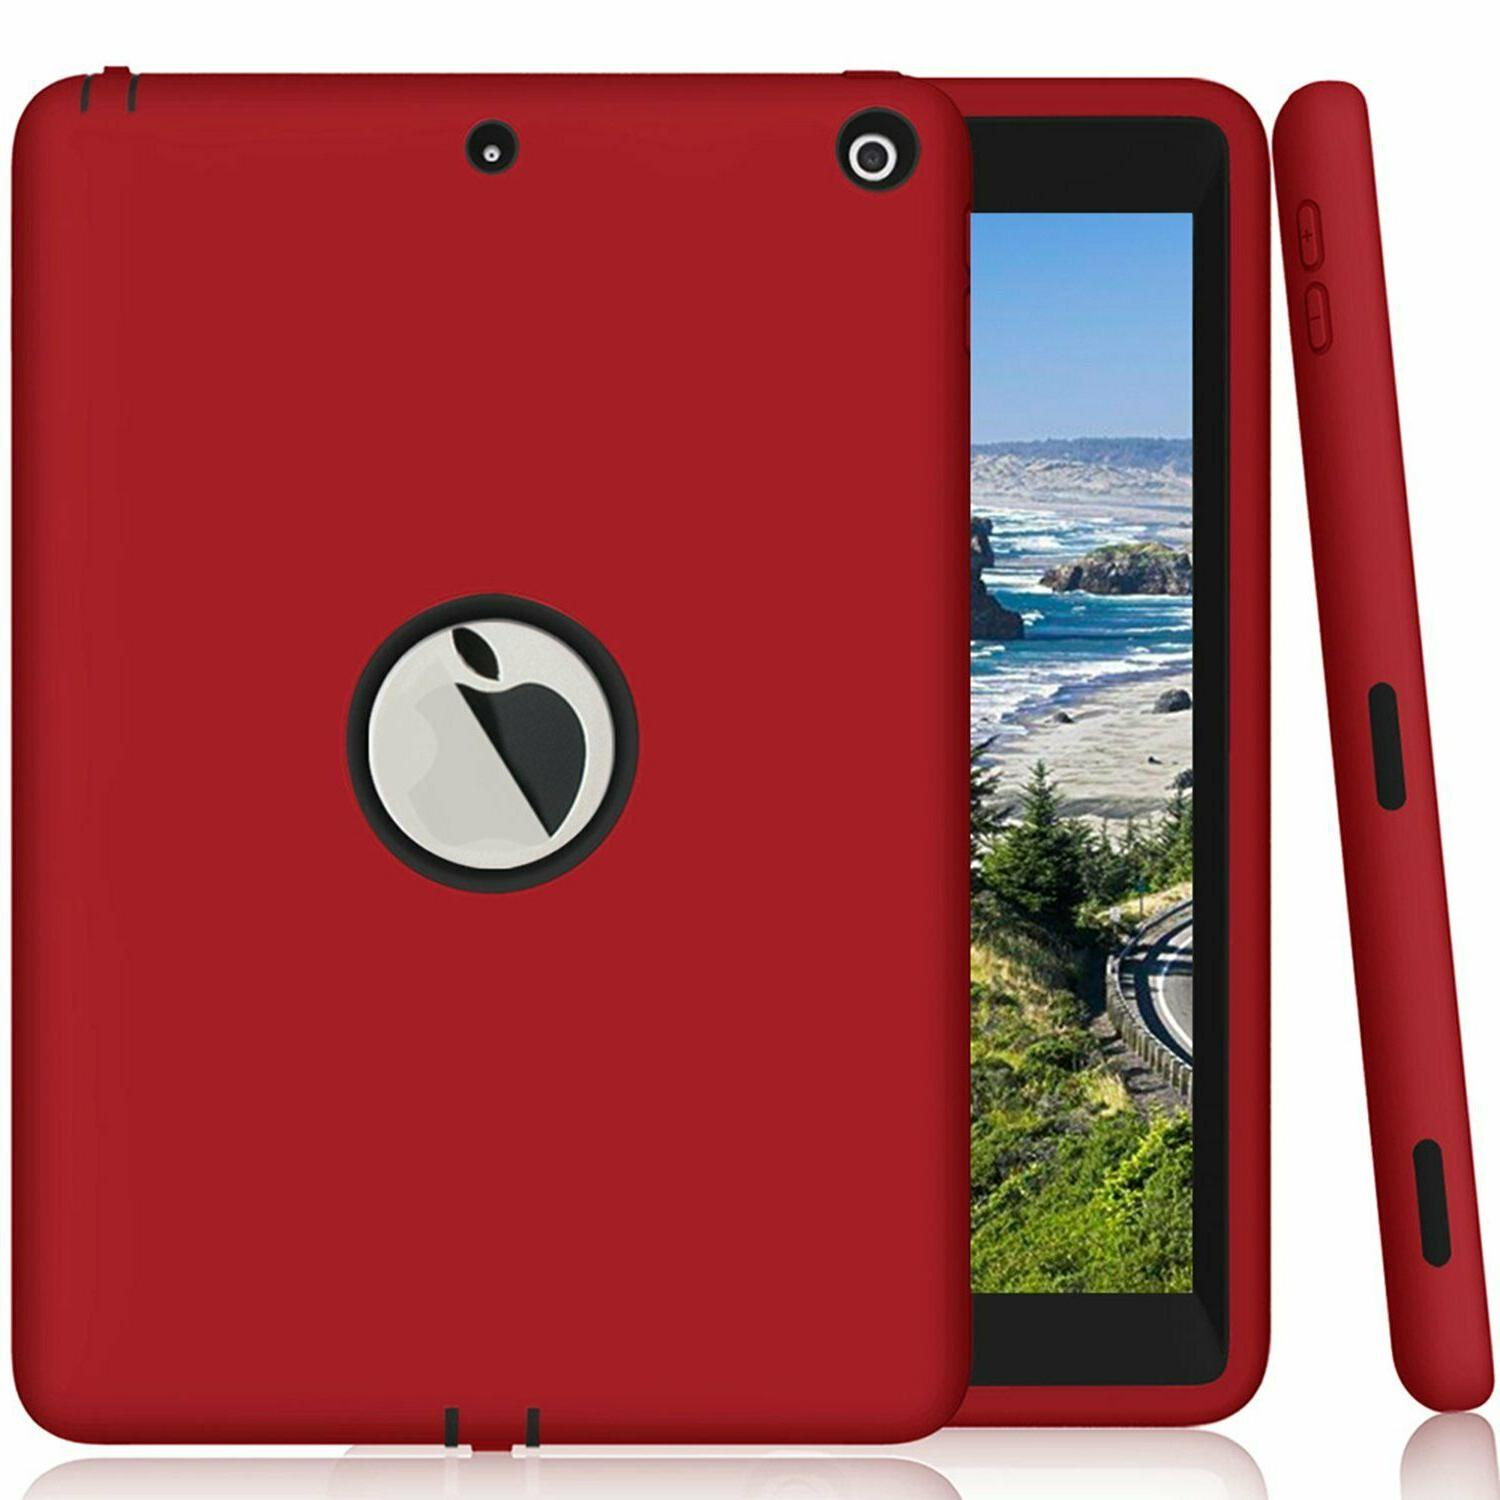 iPad-9-7-Case-5-6th-Generation-Protector-Shield-Stand-Shockproof-Otterbox-New